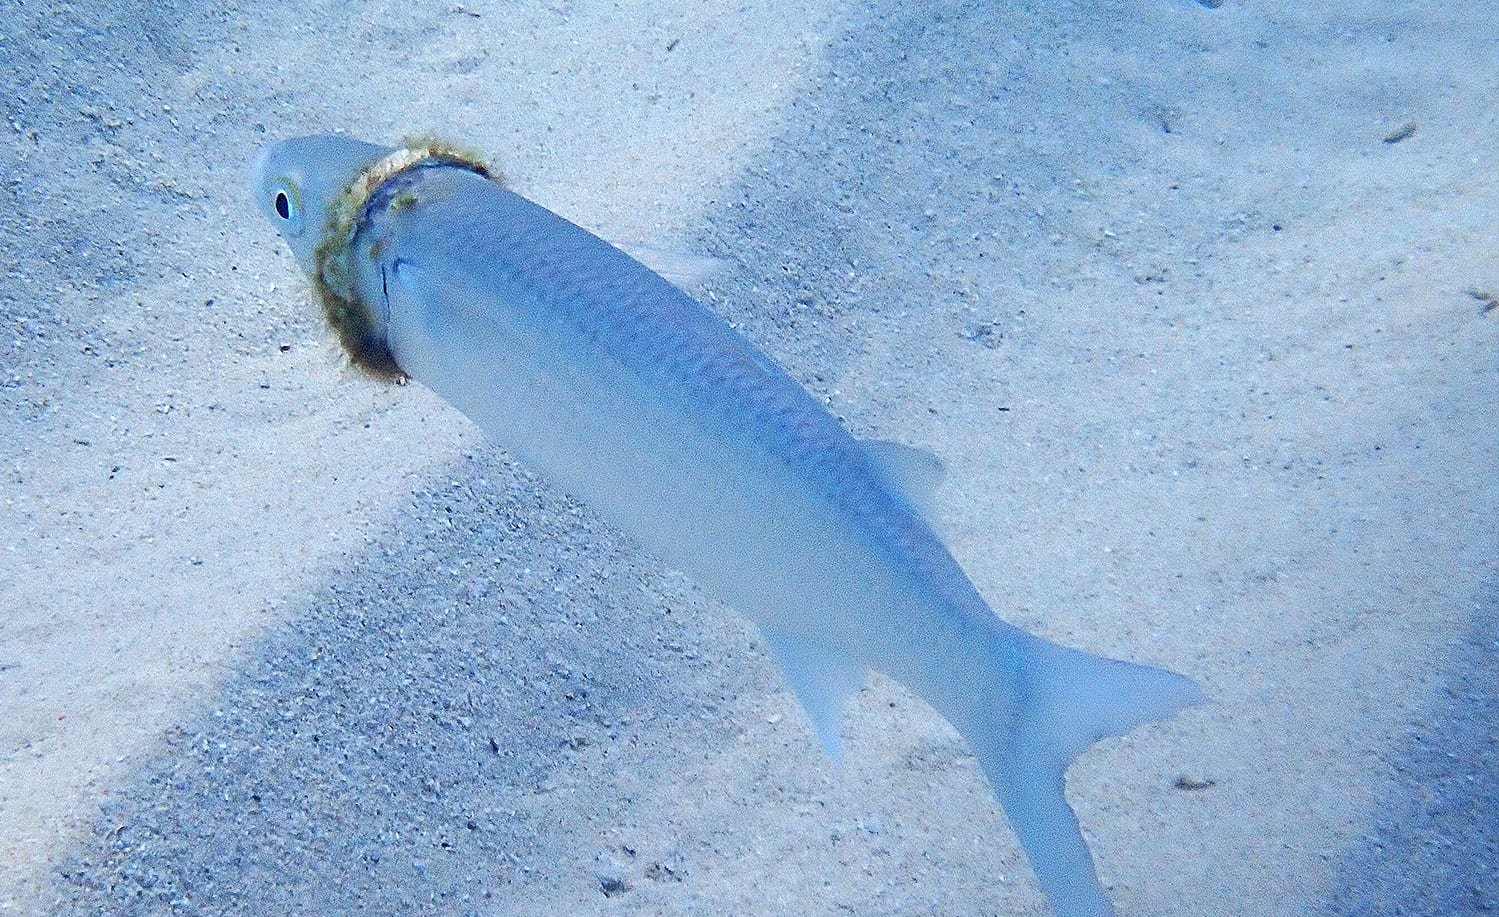 Snorkeler spots man's lost wedding ring on a tiny fish. Now what? - cover